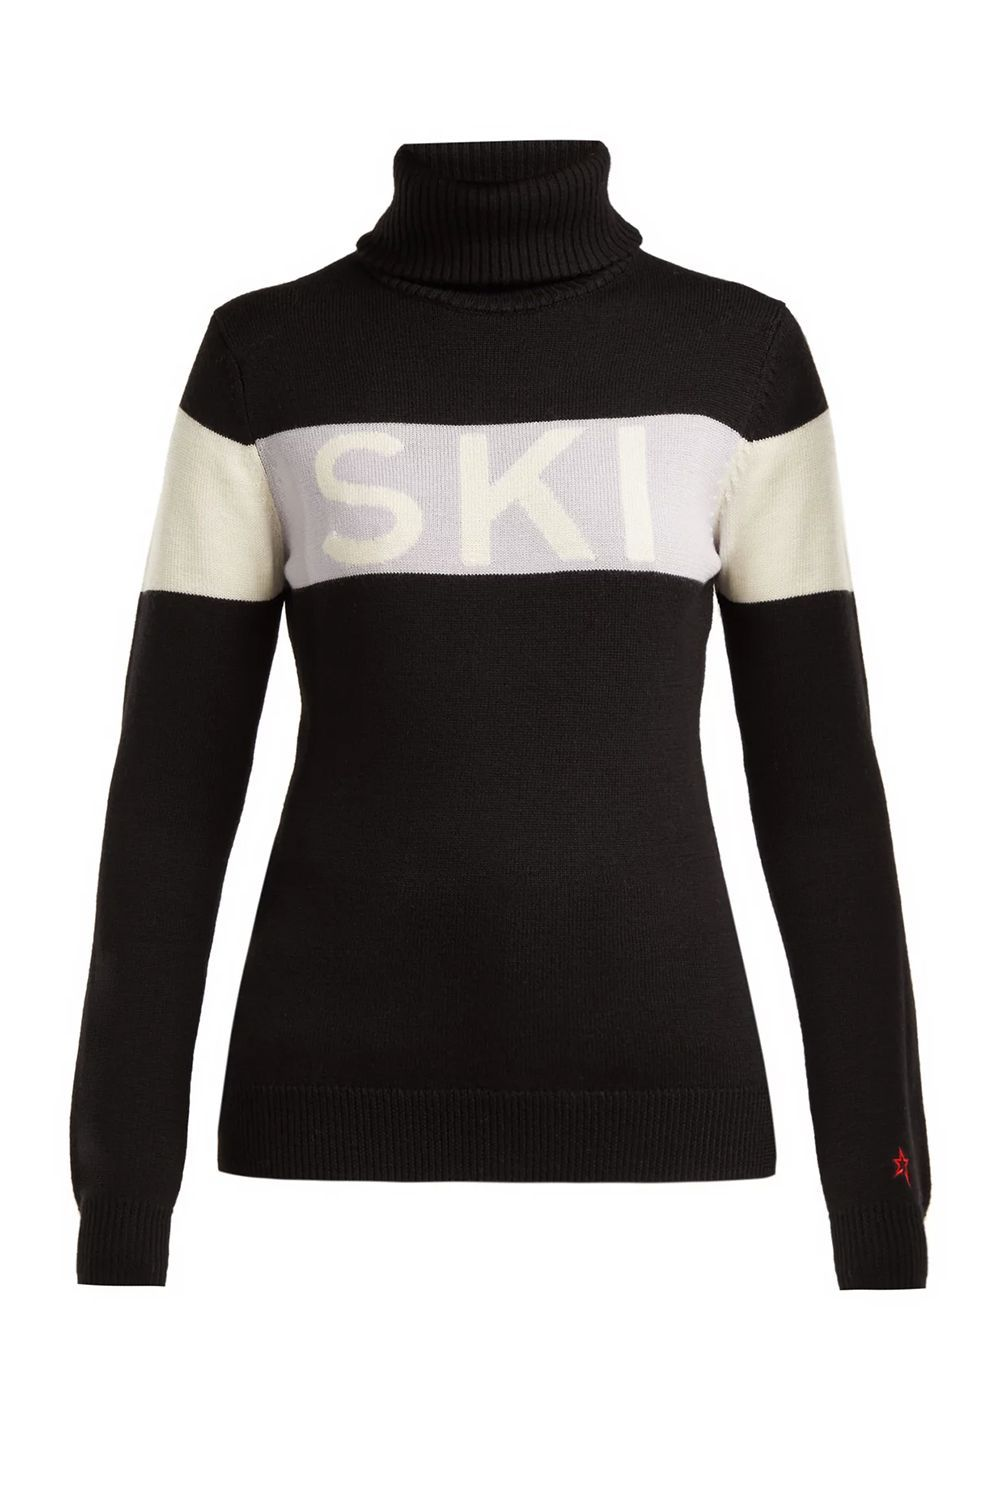 Ski and snowboard sweater on dark heather a stylish jumper for the snow season